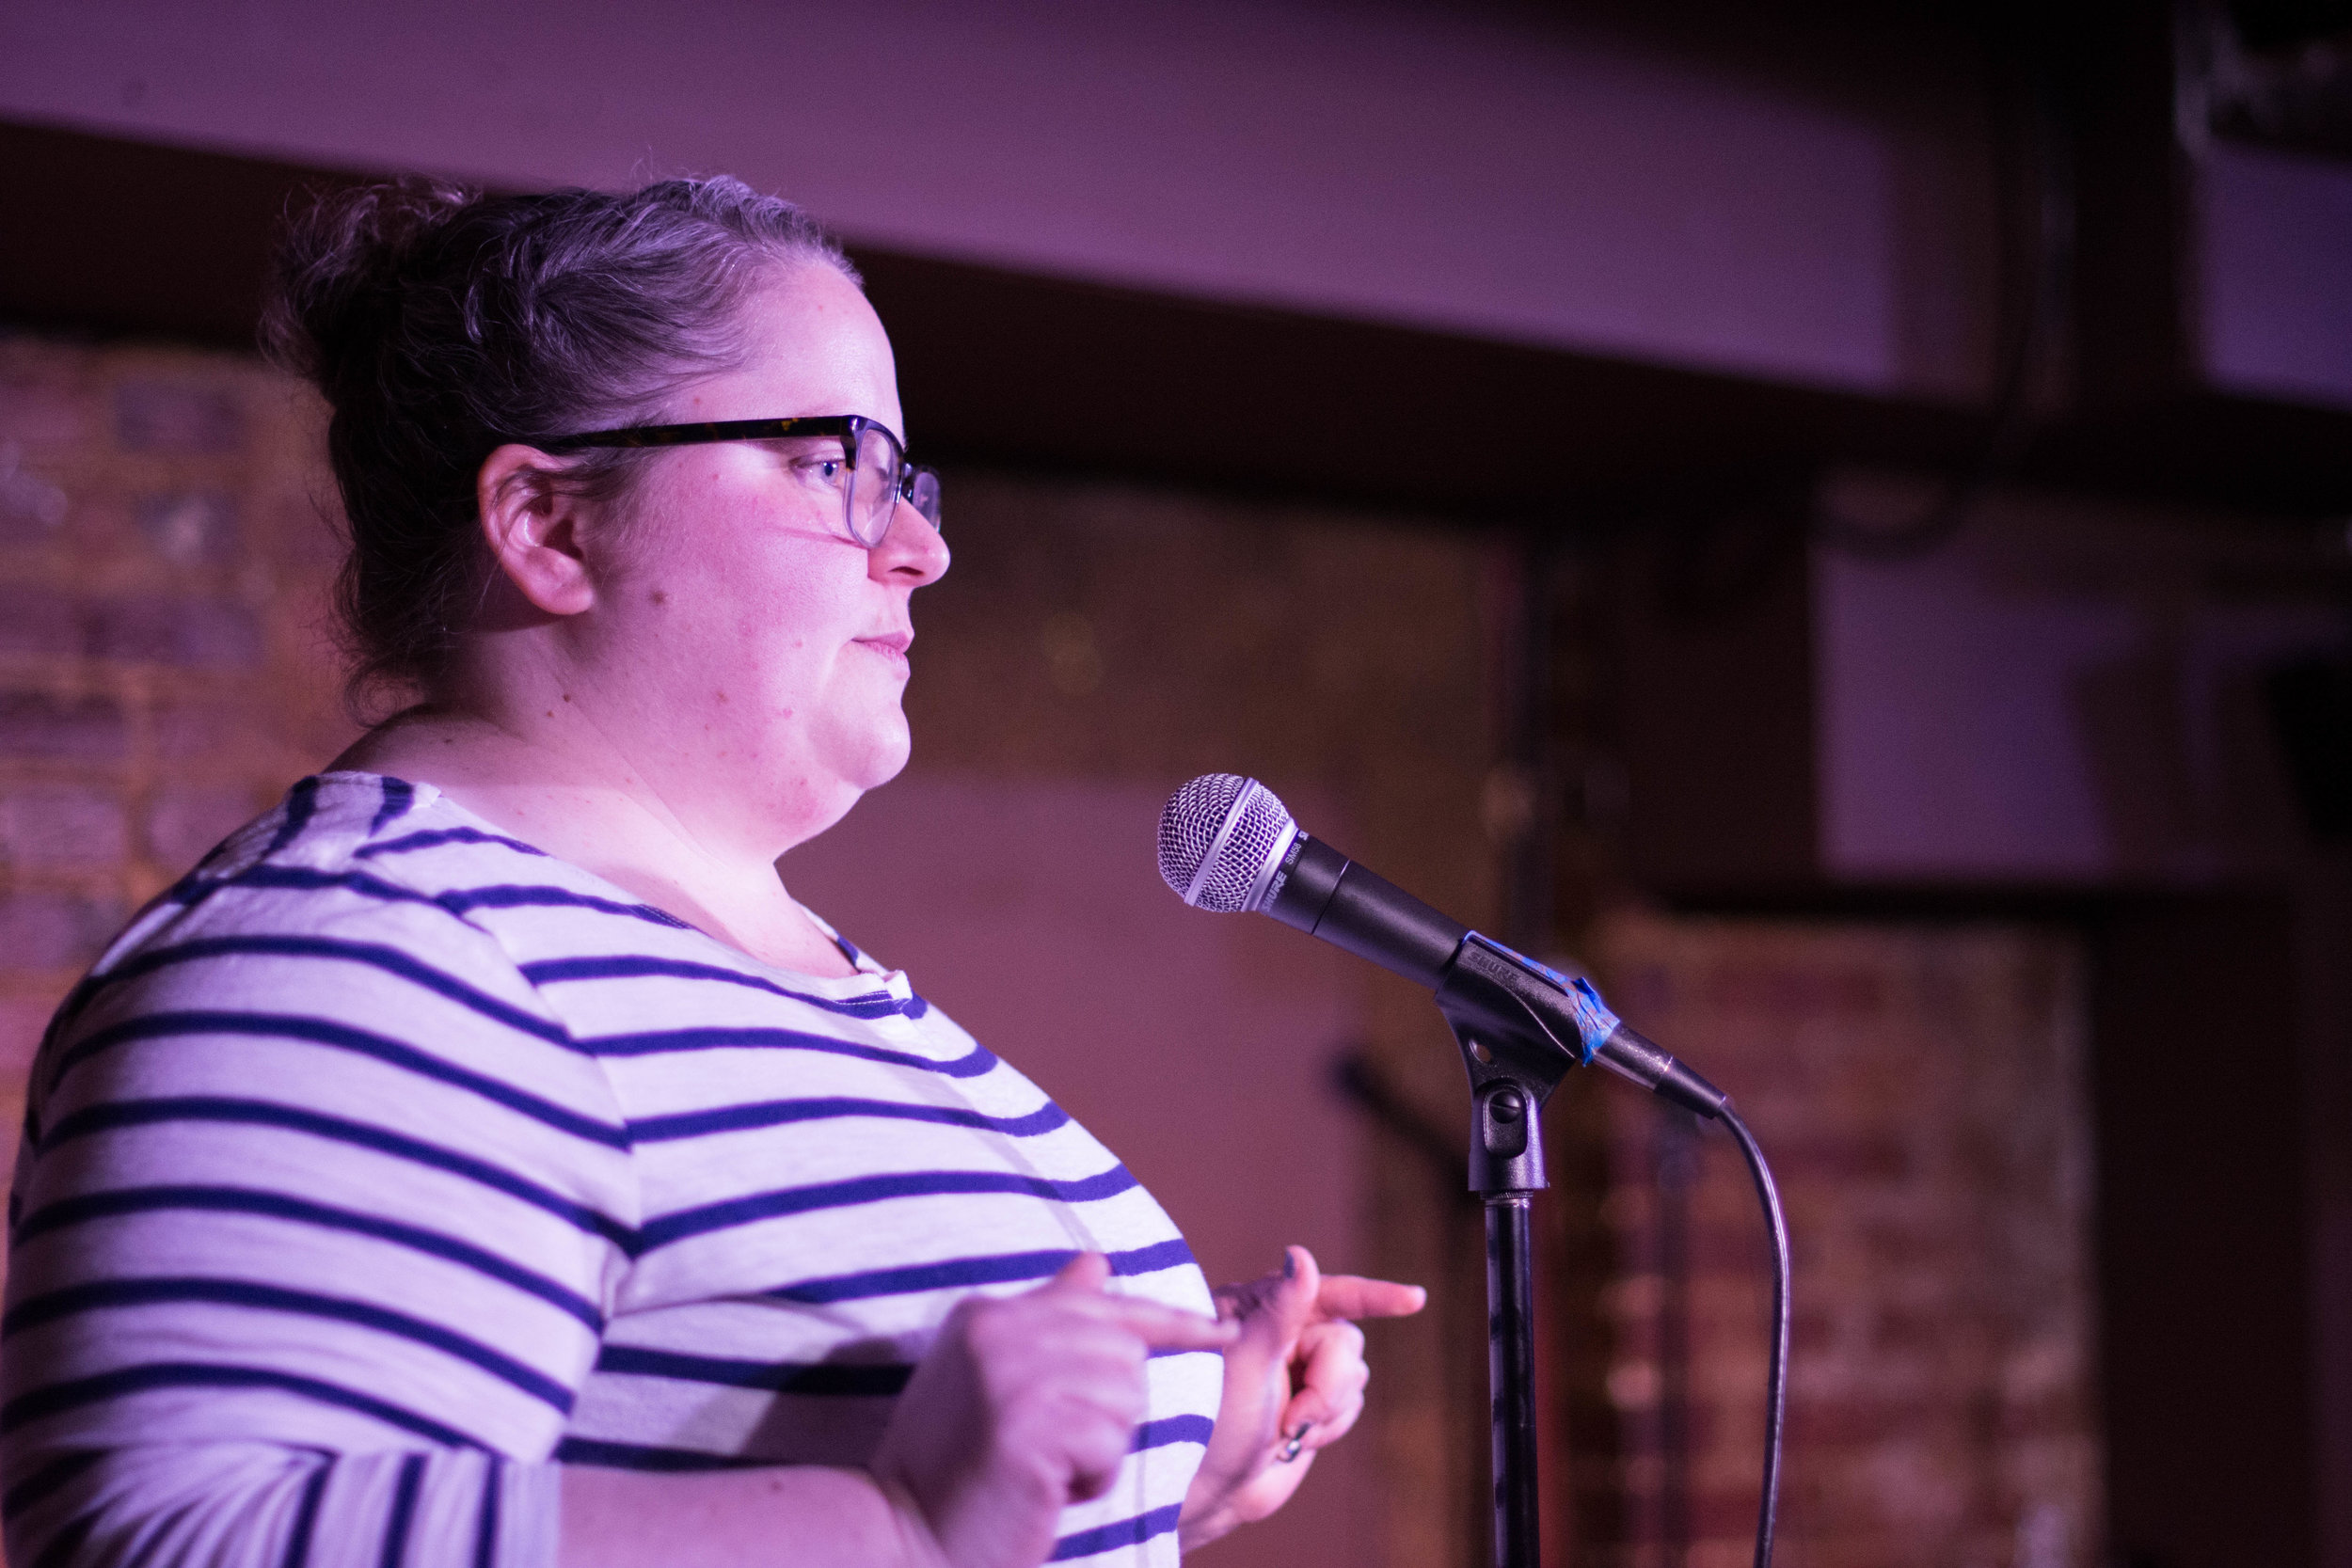 Emily Yarrison shares her story with The Story Collider at the Bier Baron Tavern in Washington DC in February 2019. Photo by Lauren Lipuma.